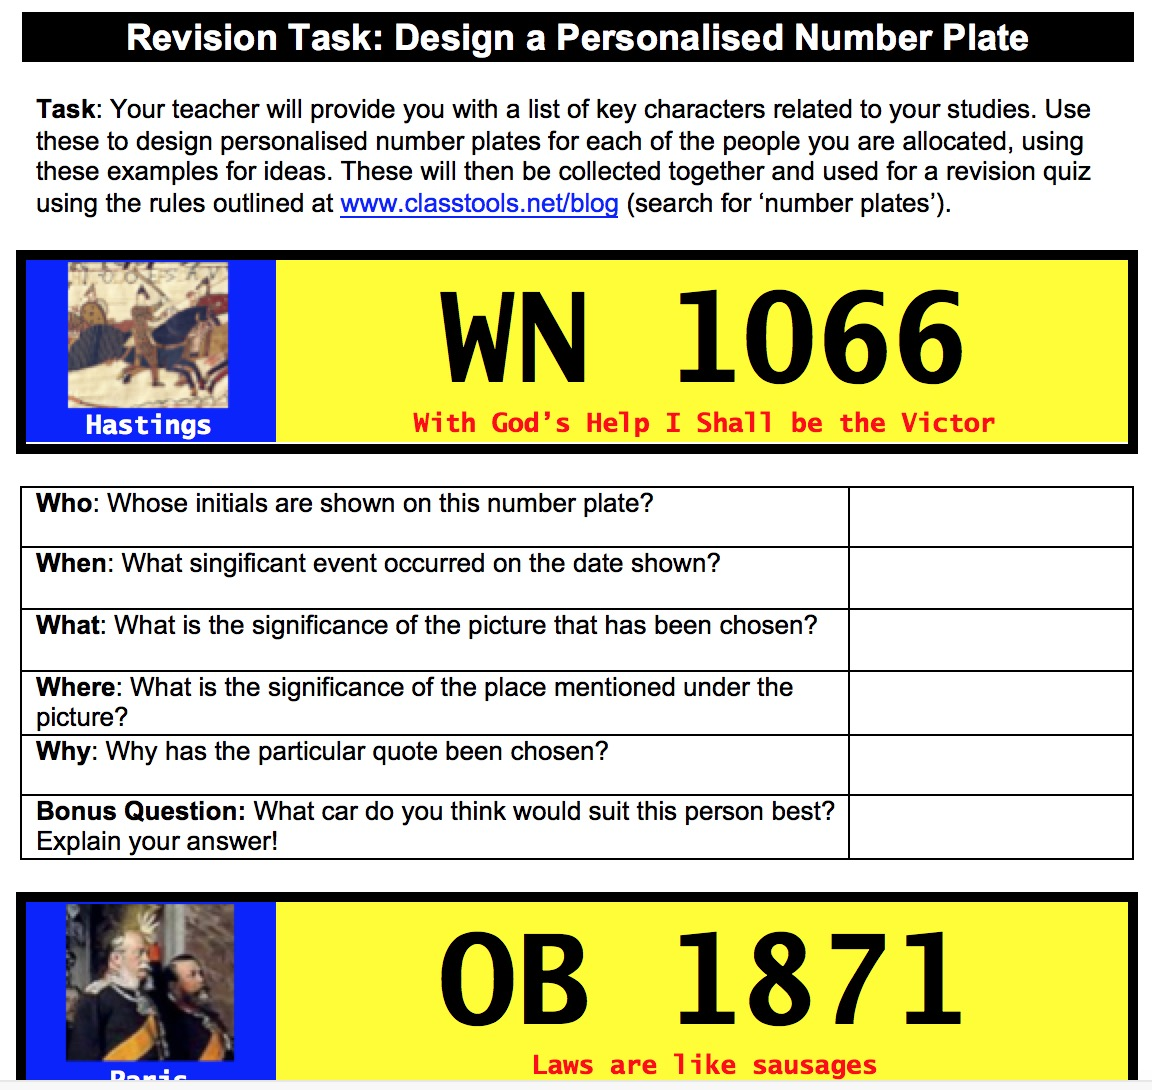 Design personalised number plates as a revision exercise